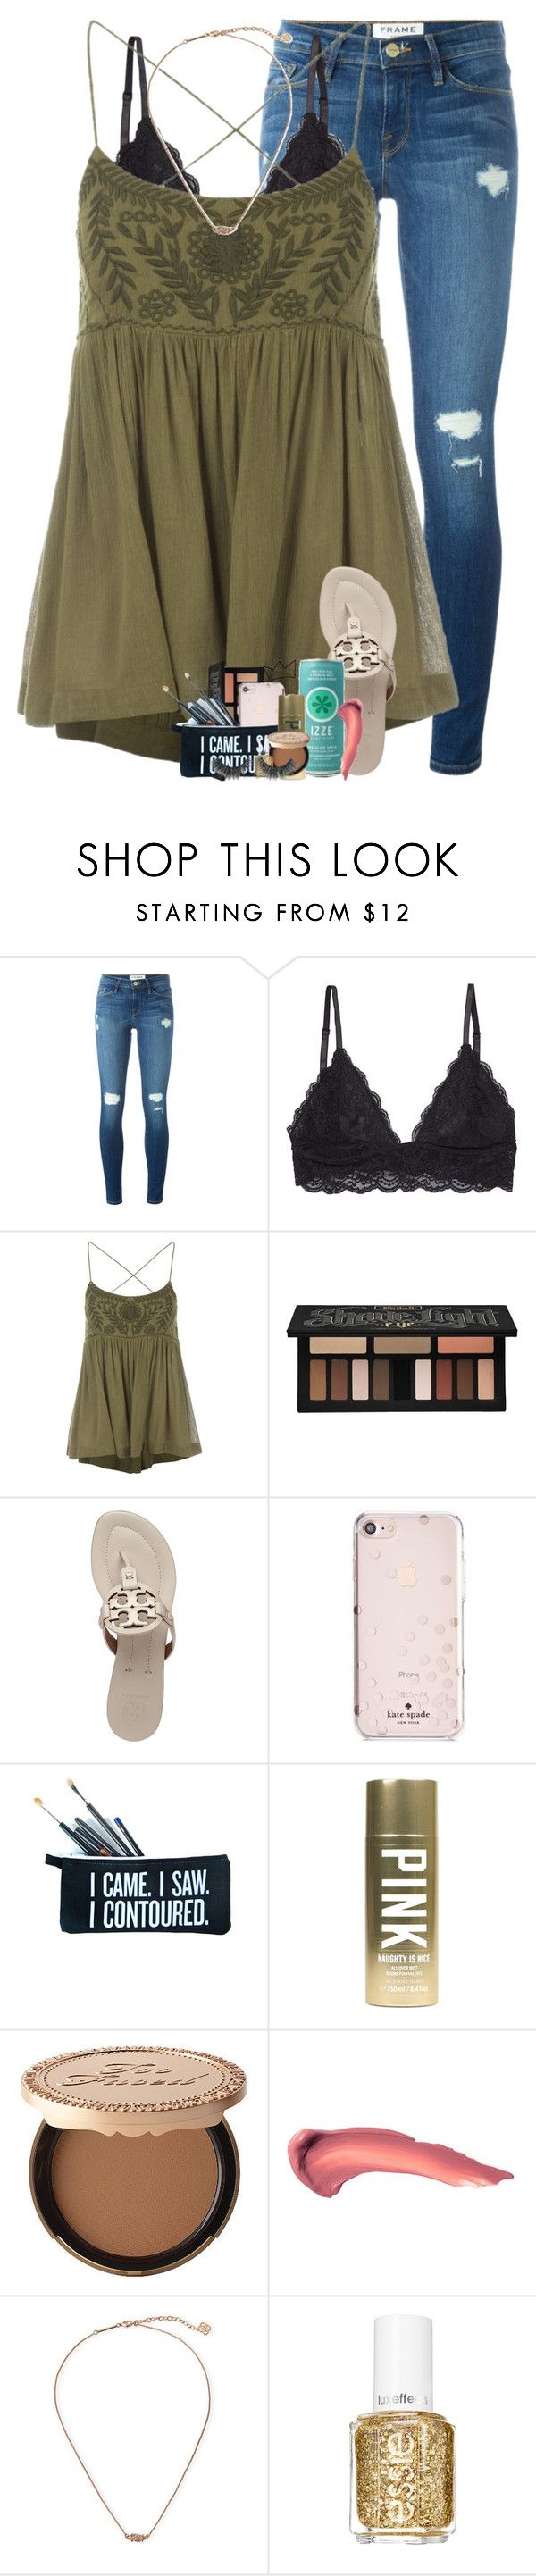 """it's only a matter of time before you begin to believe the lies people tell about you"" by theblonde07 ❤ liked on Polyvore featuring Frame, Free People, Kat Von D, Tory Burch, Kate Spade, SugarLuxeShop, Victoria's Secret, ULTA, Kendra Scott and Essie"